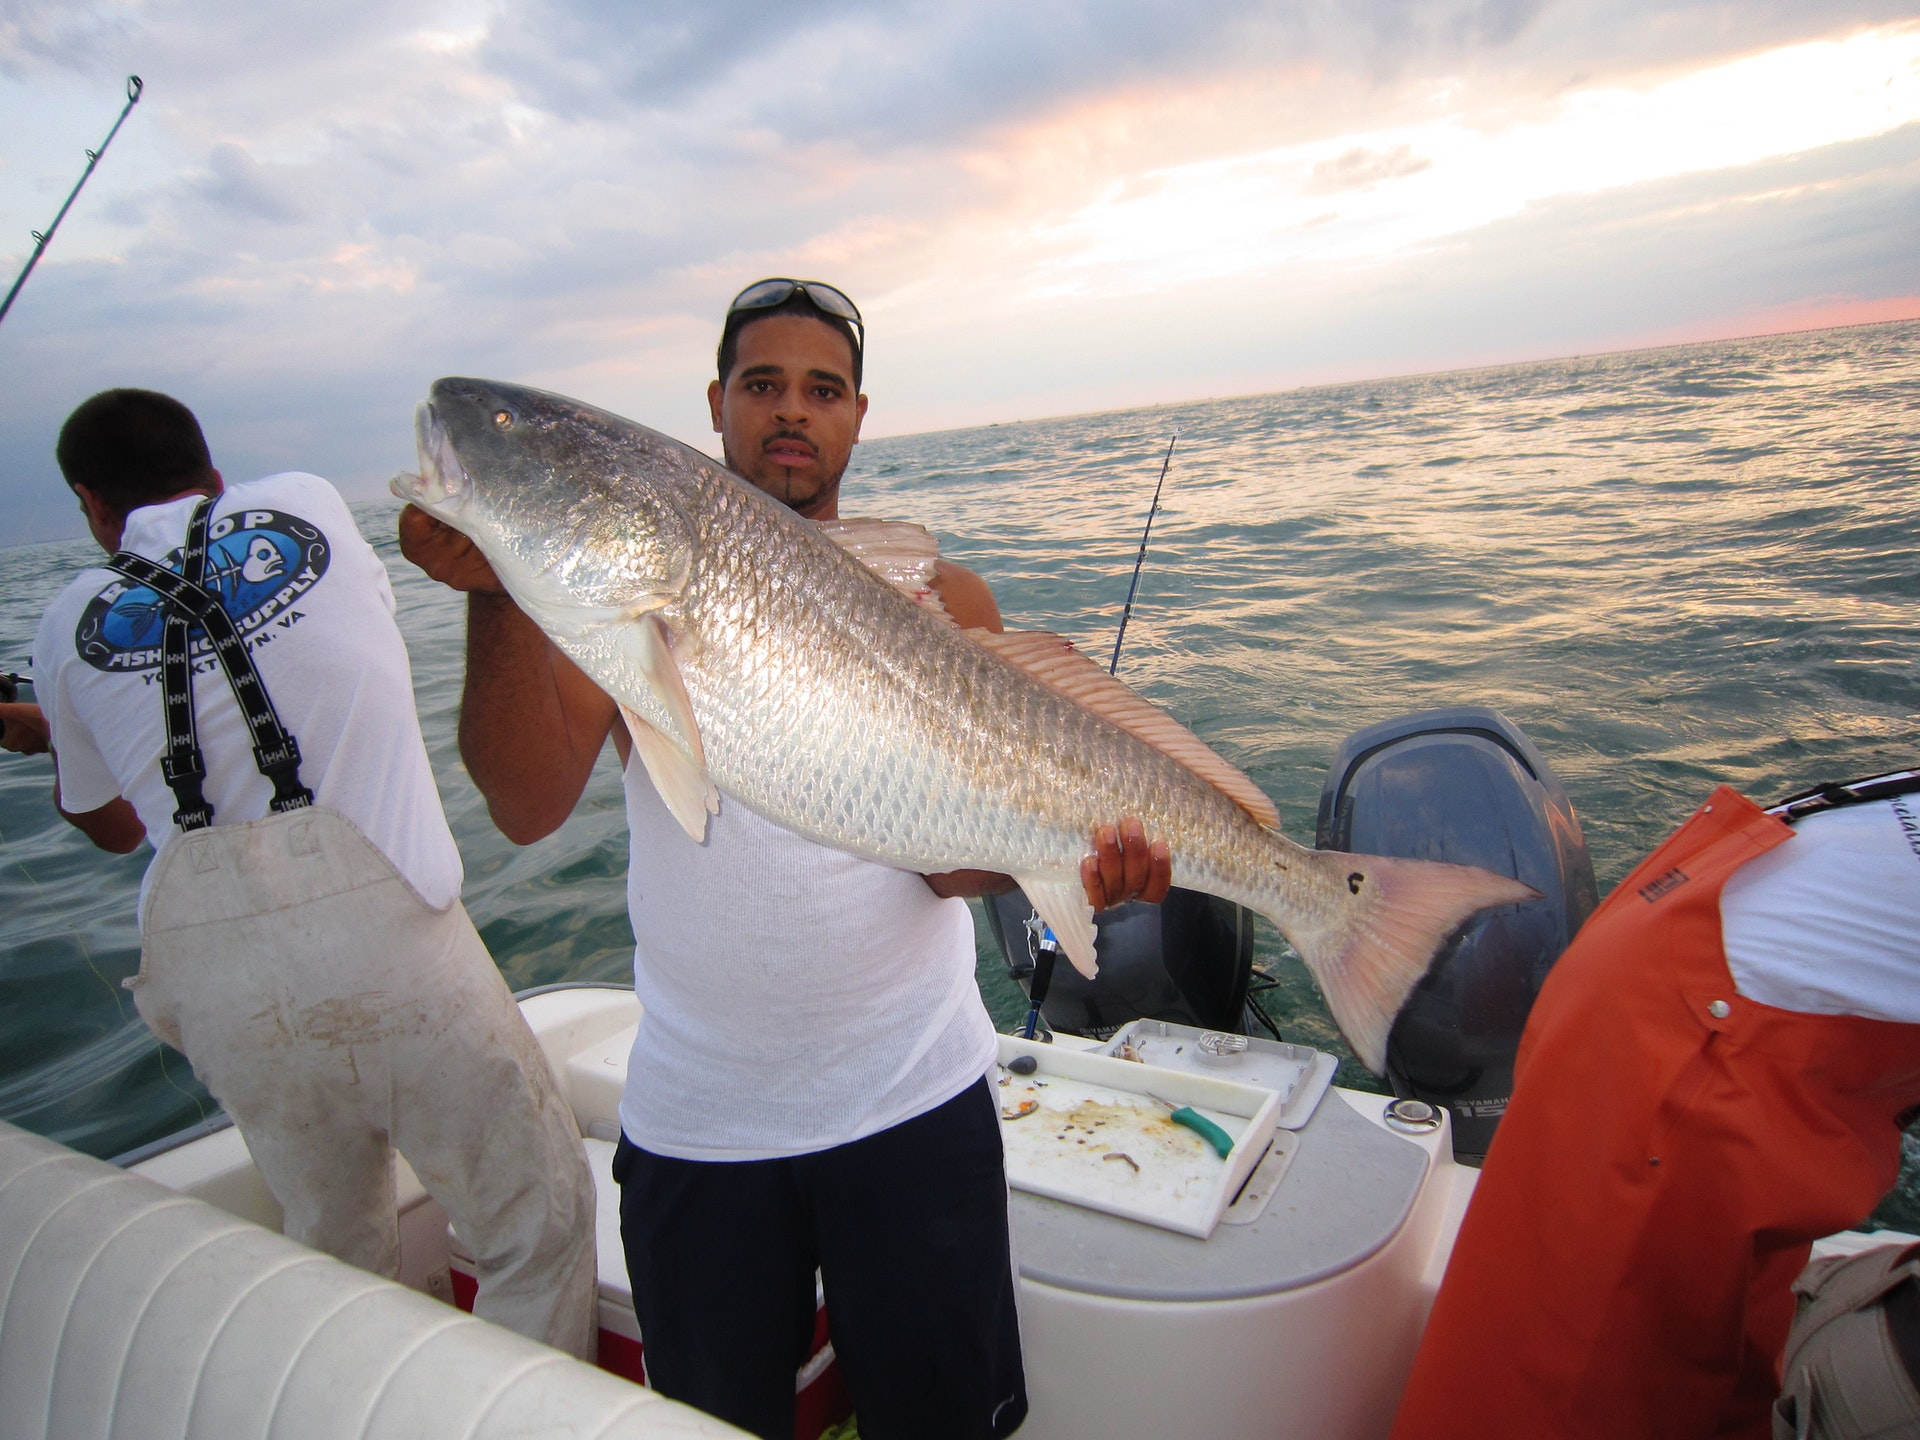 A man holds up a red drum he caught at dusk